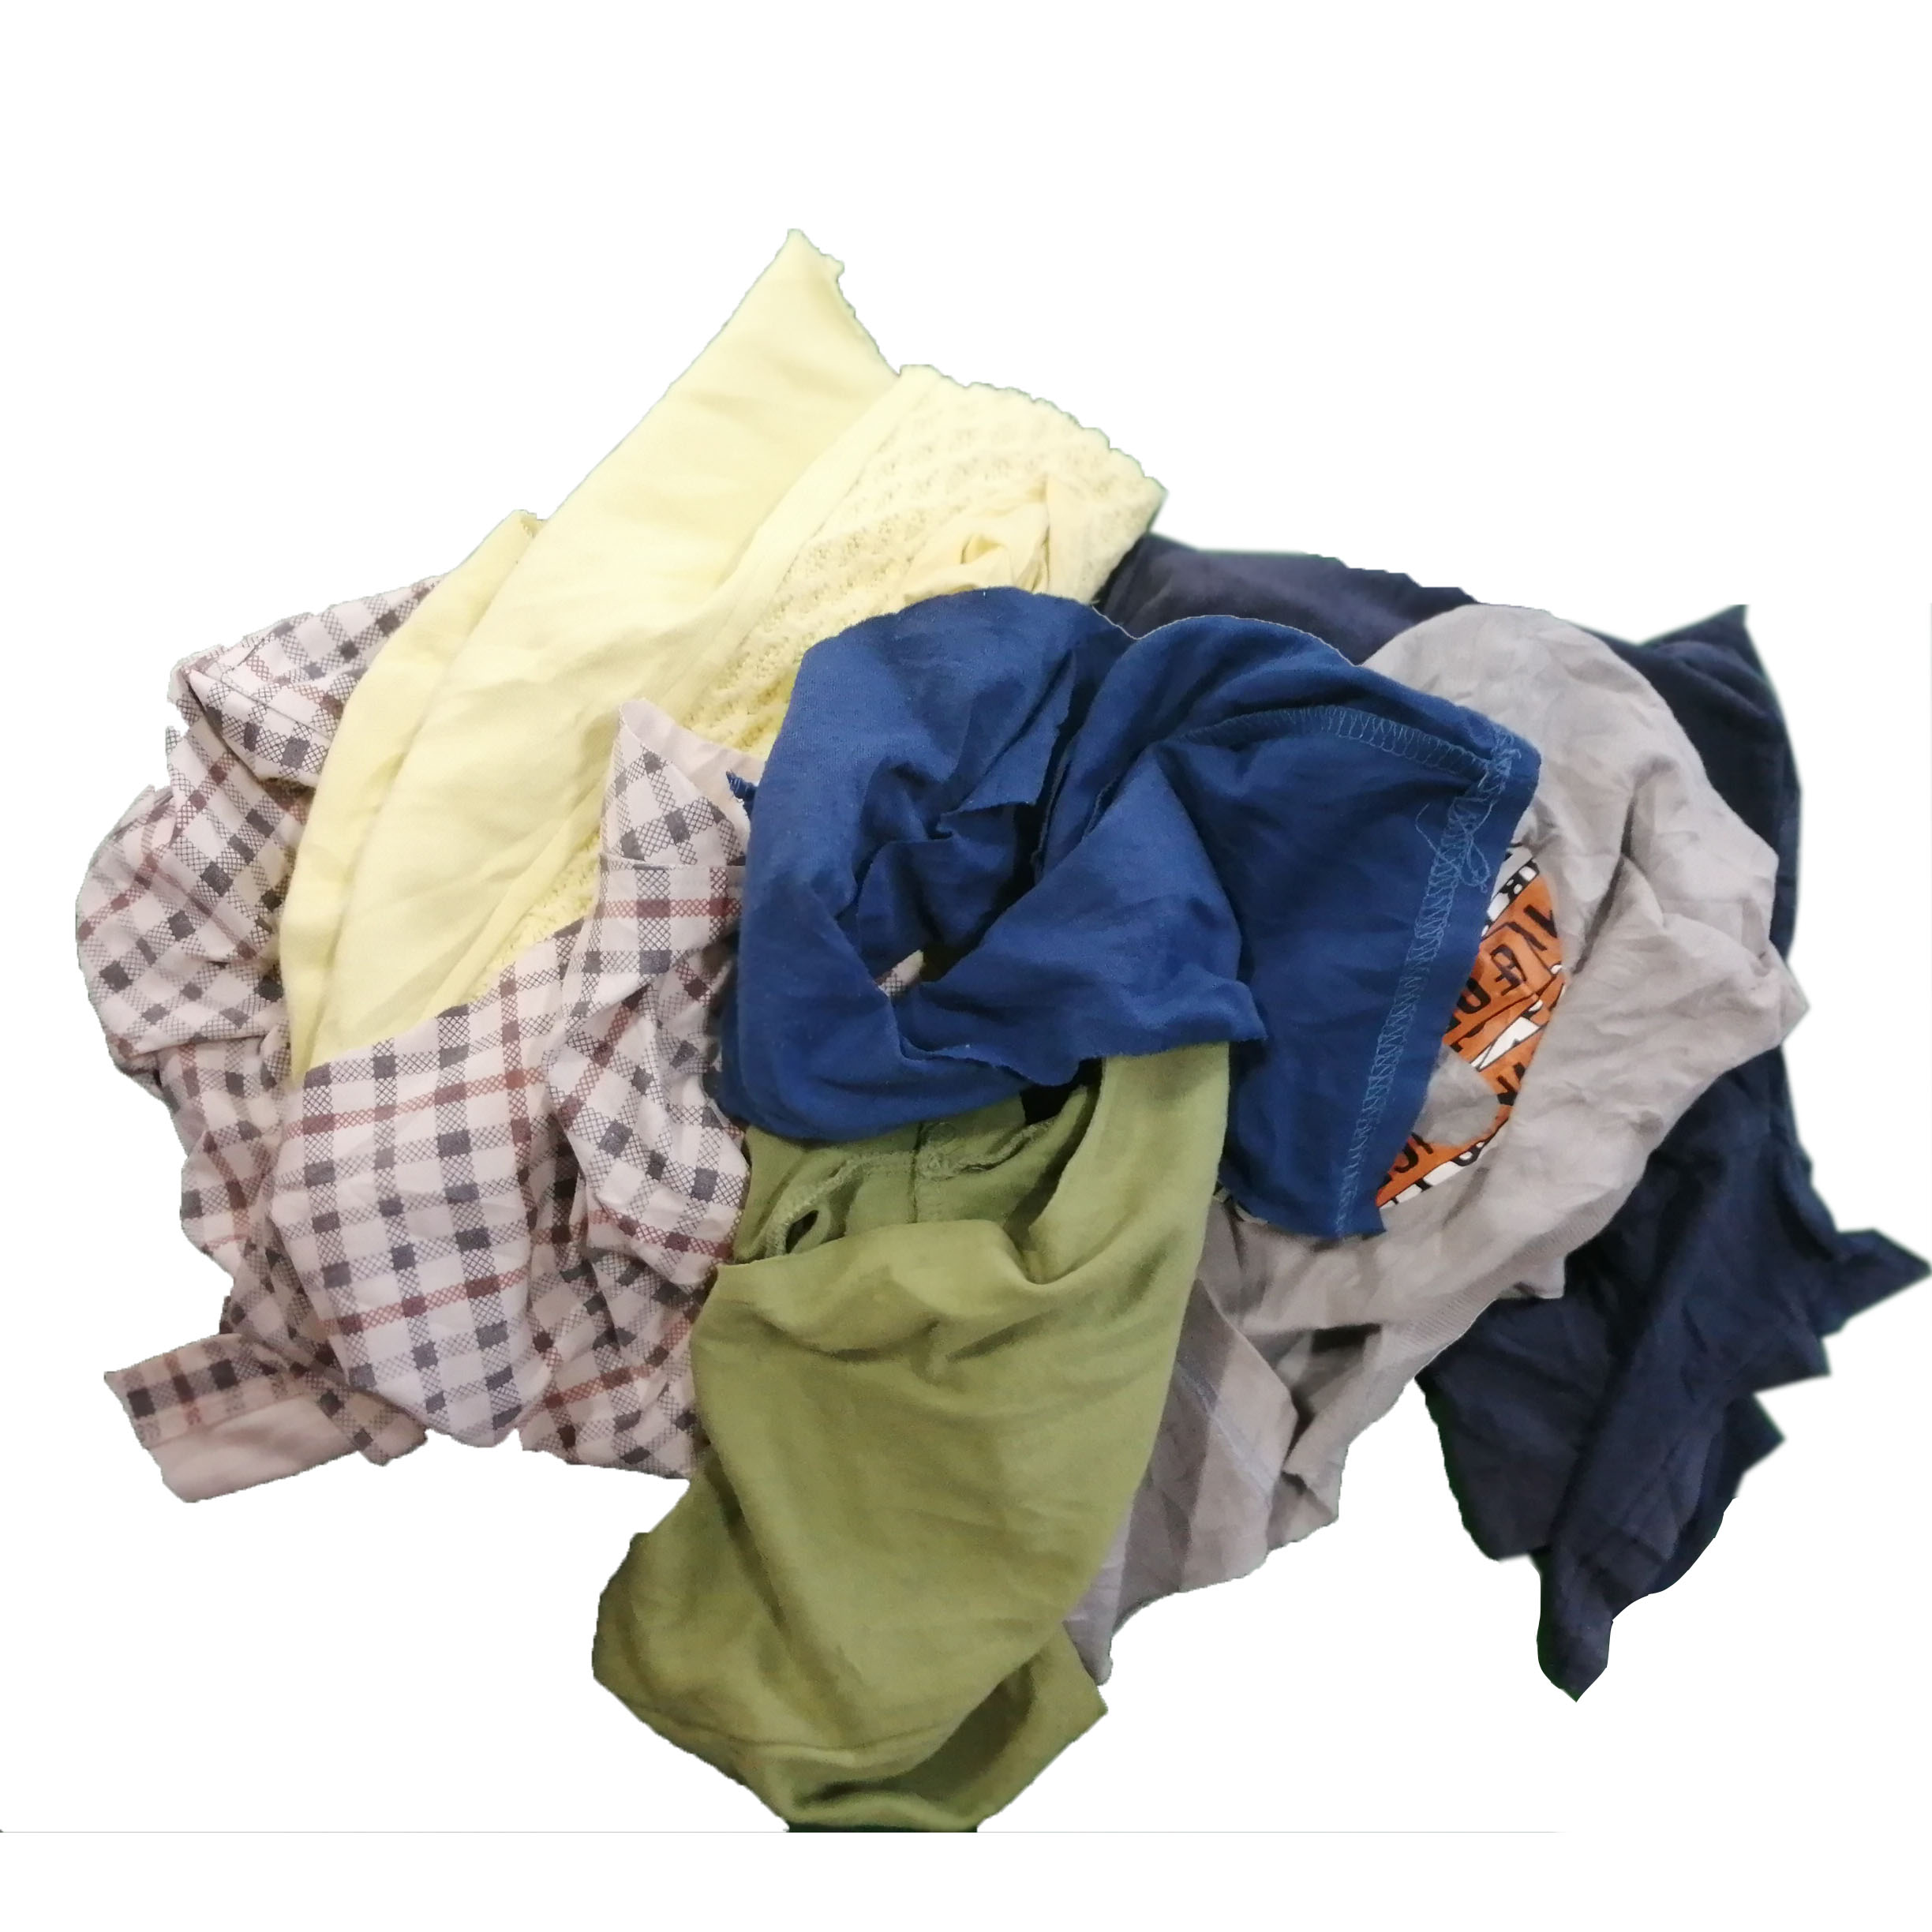 Industrial use cleaning wiping fabric rags 35cm 55cm t shirt mixed color 100% cotton rags